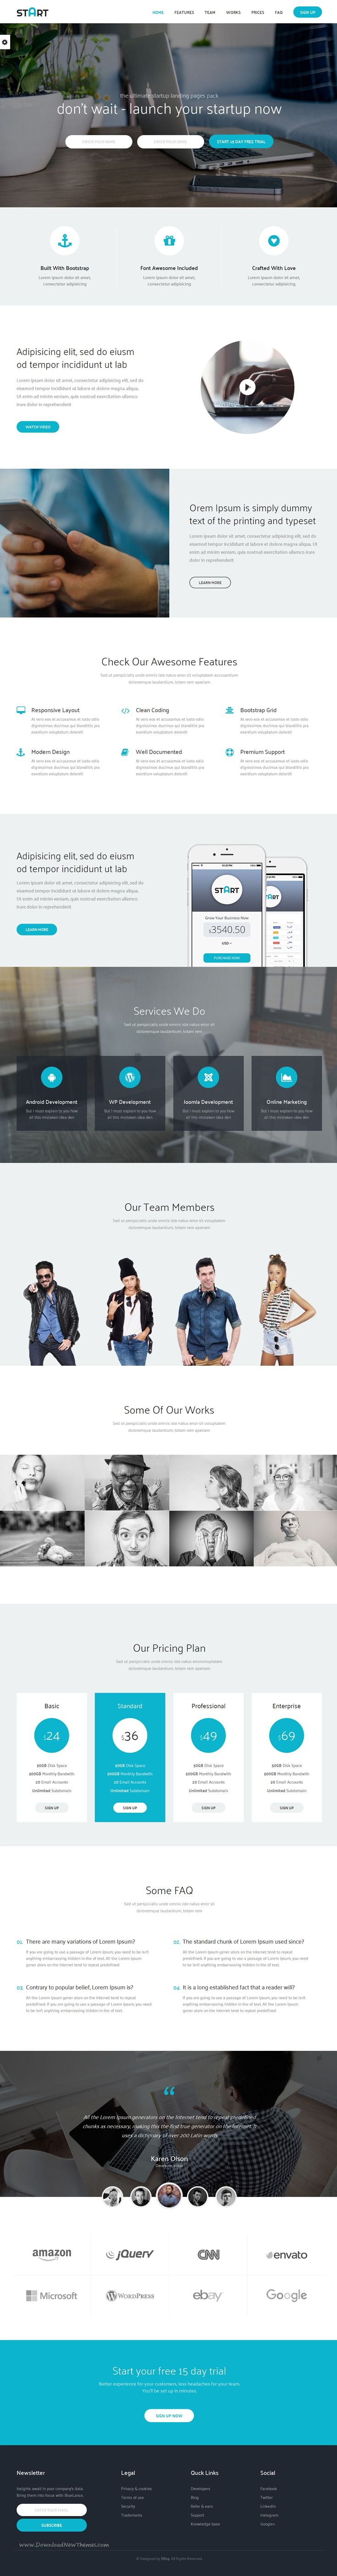 Start complete landing page bootstrap #template for corporate or agencies. It comes in #onepage and multi page layouts. #startup